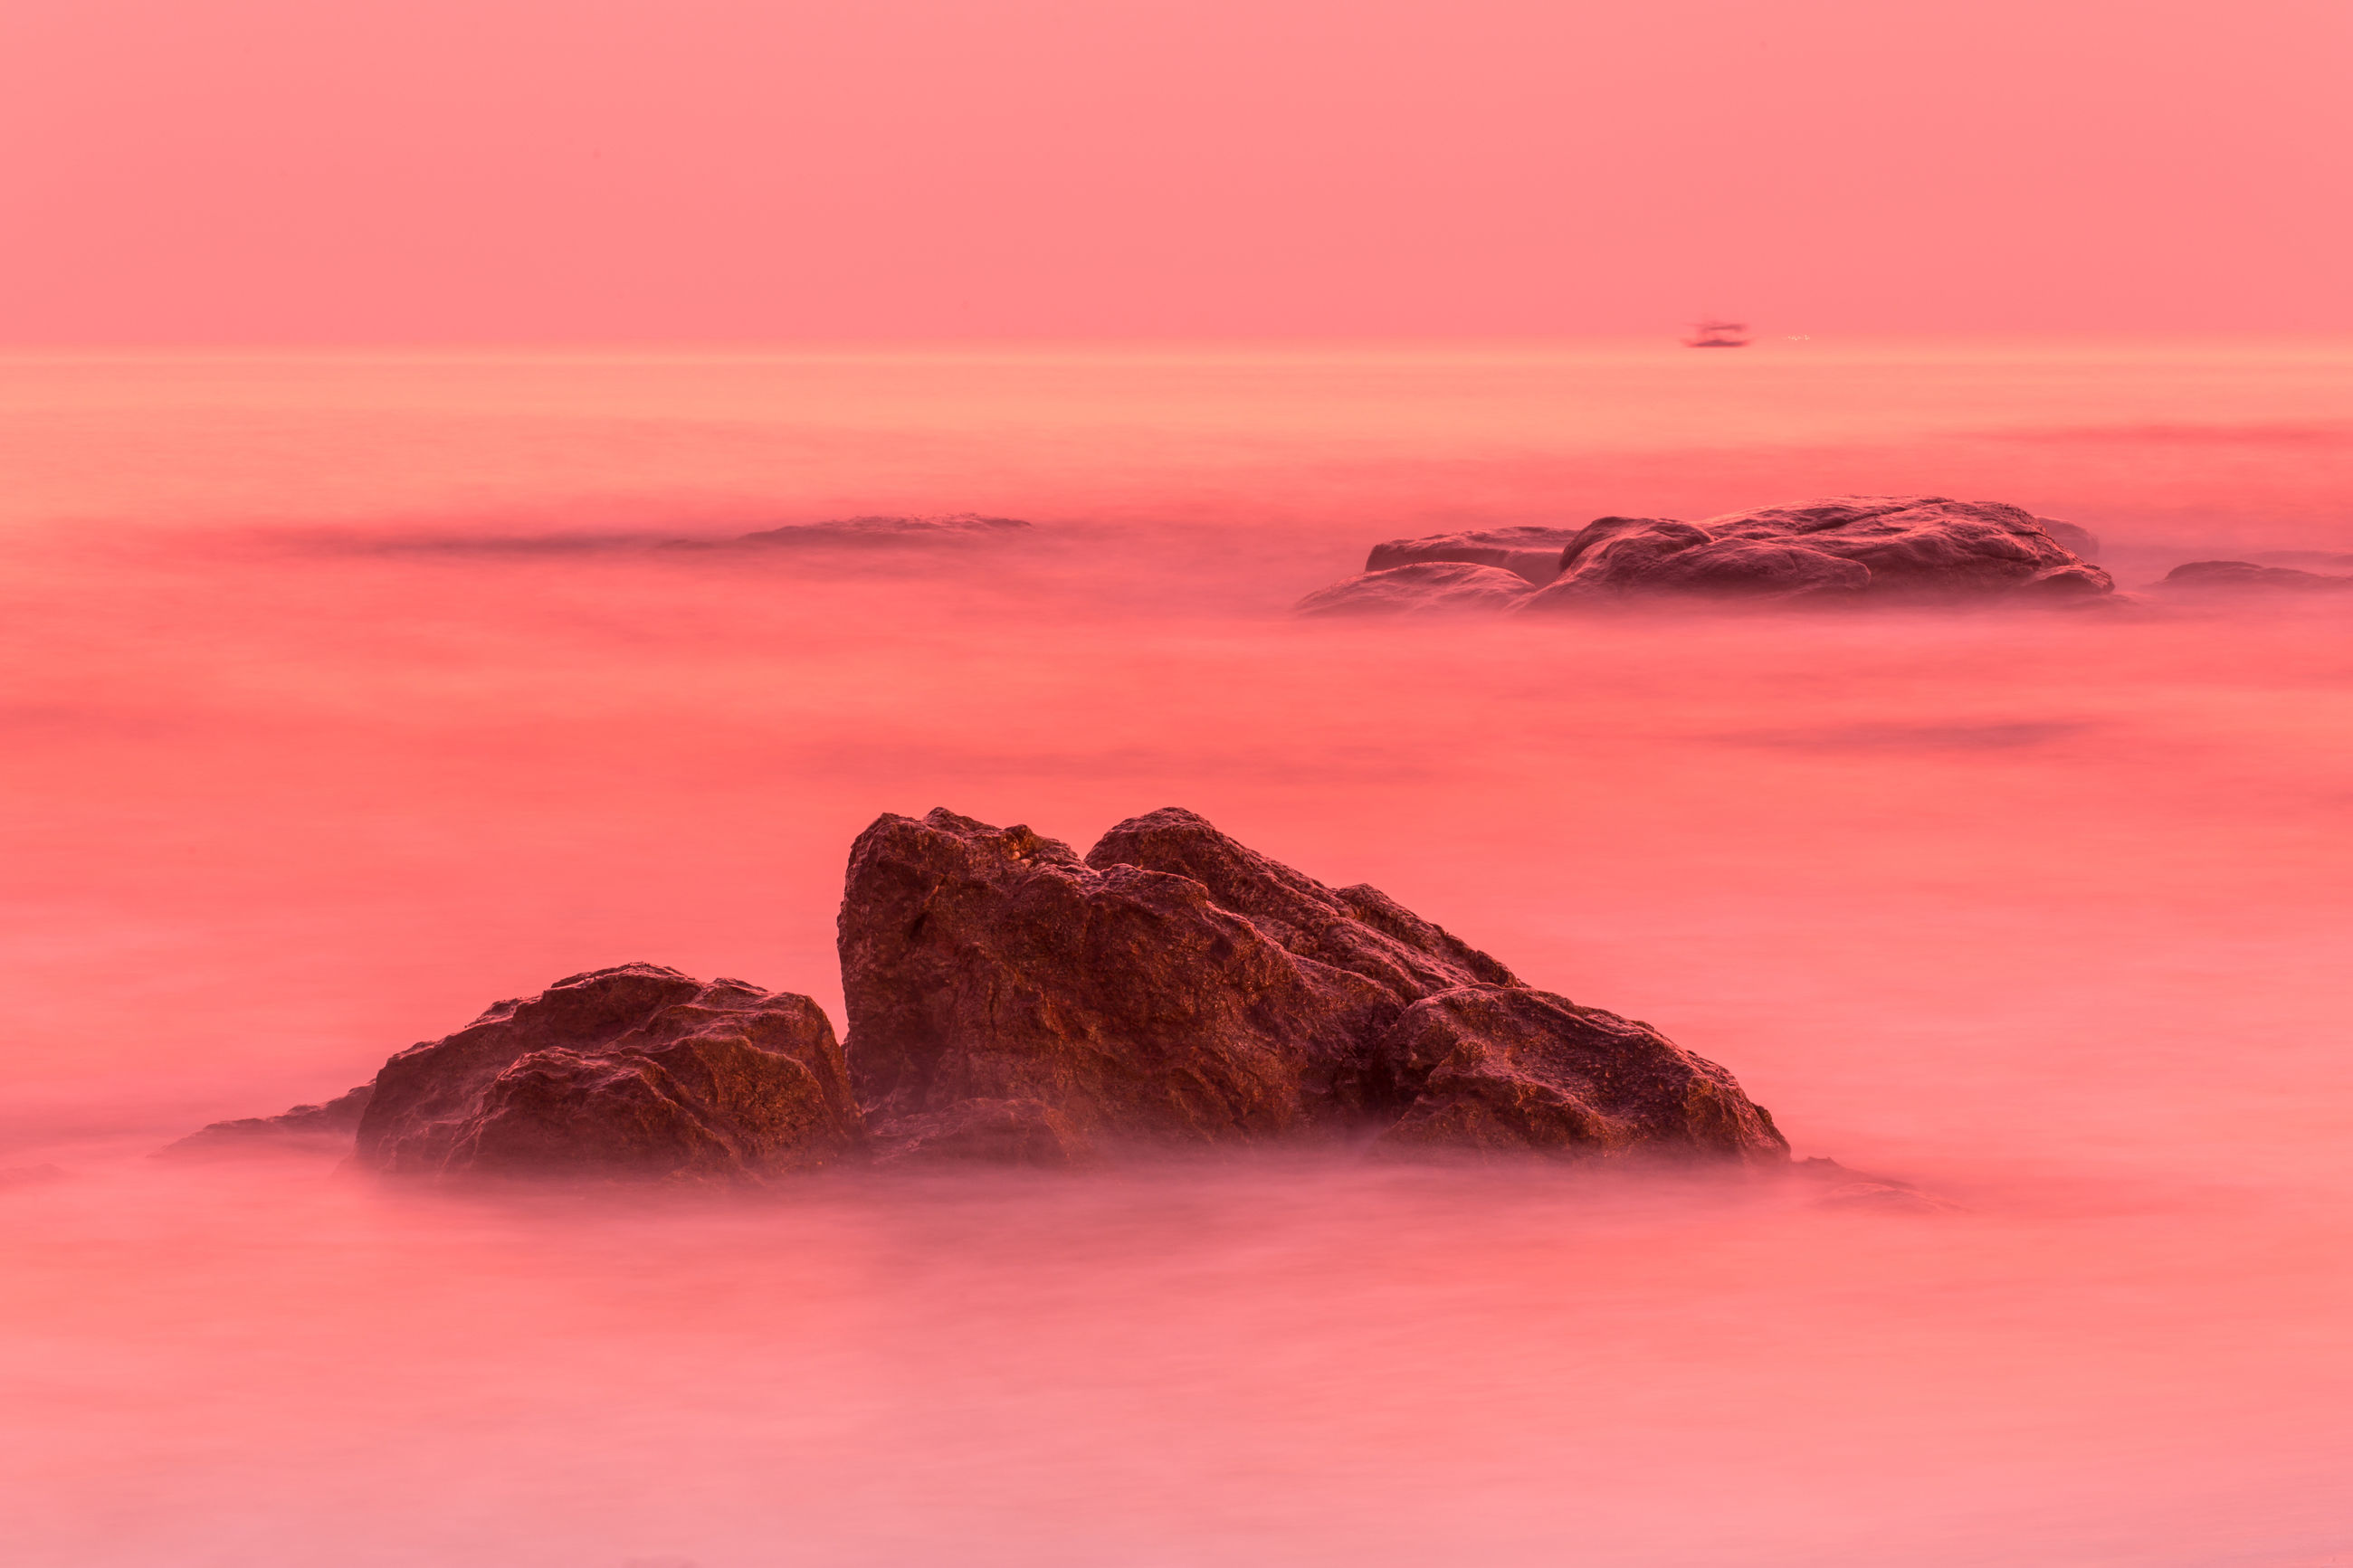 ROCK FORMATION IN SEA AGAINST ROMANTIC SKY